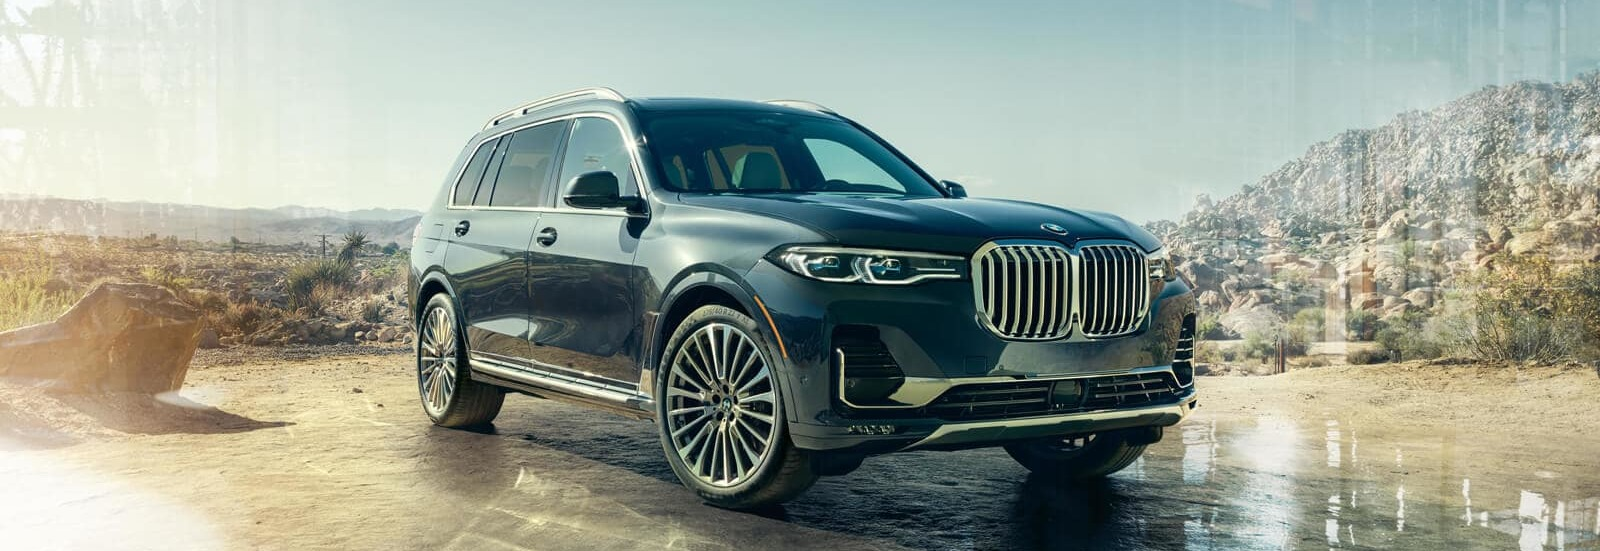 2020 BMW X7 Lease in Plano, TX